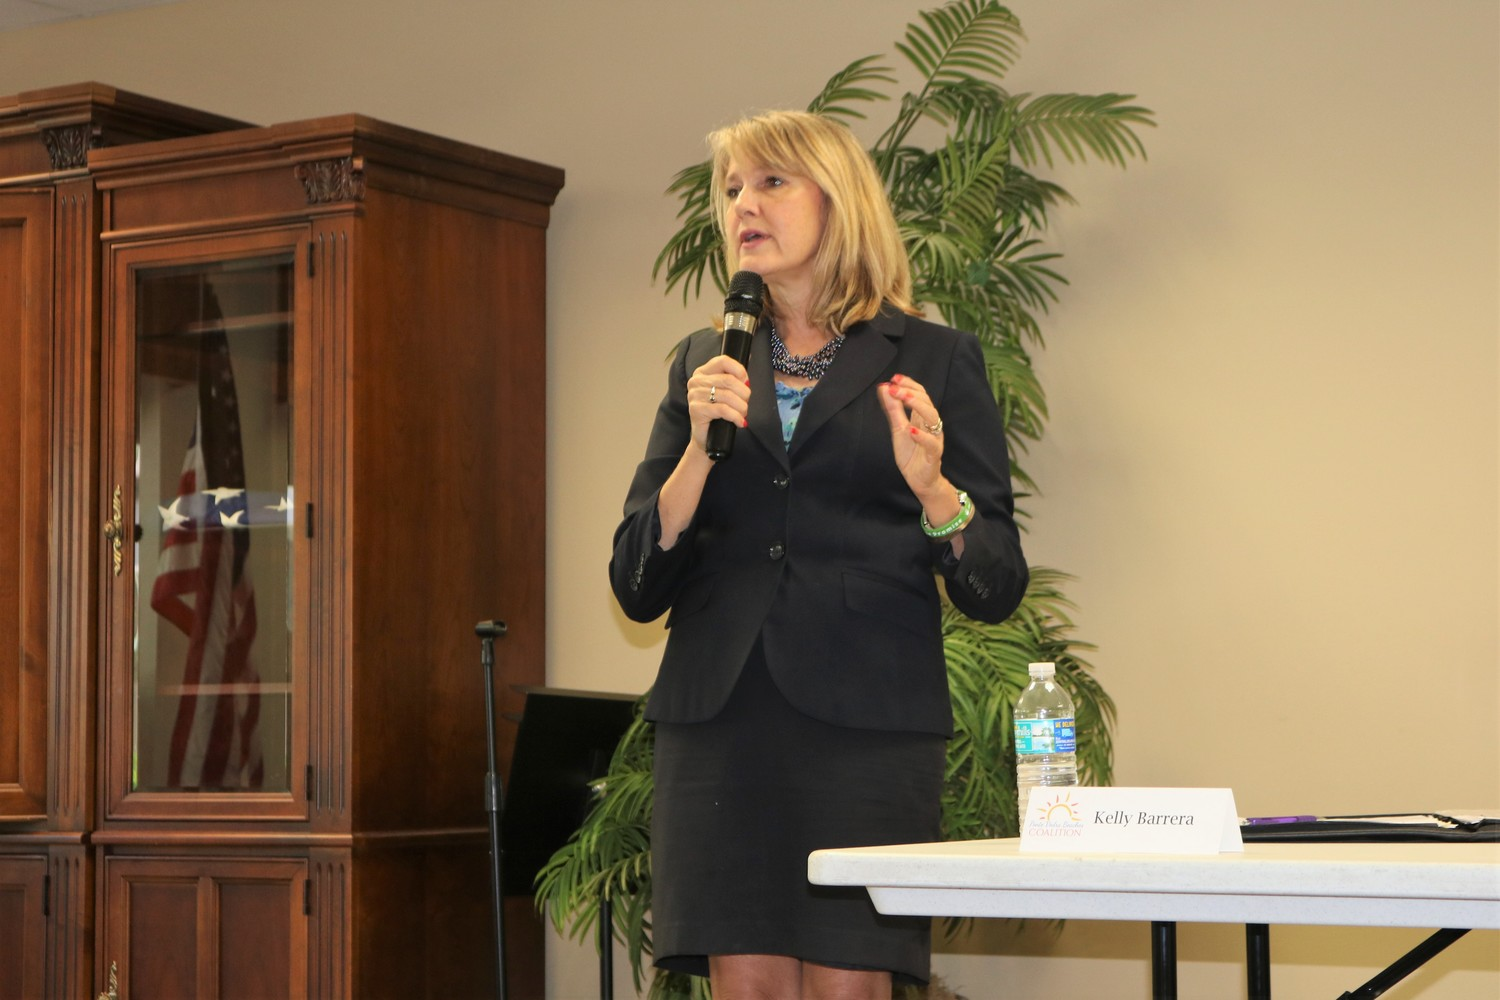 St. Johns County School Board District 4 Representative Kelly Barrera shares her platform at a June 25 candidate forum hosted by the Ponte Vedra Beaches Coalition.